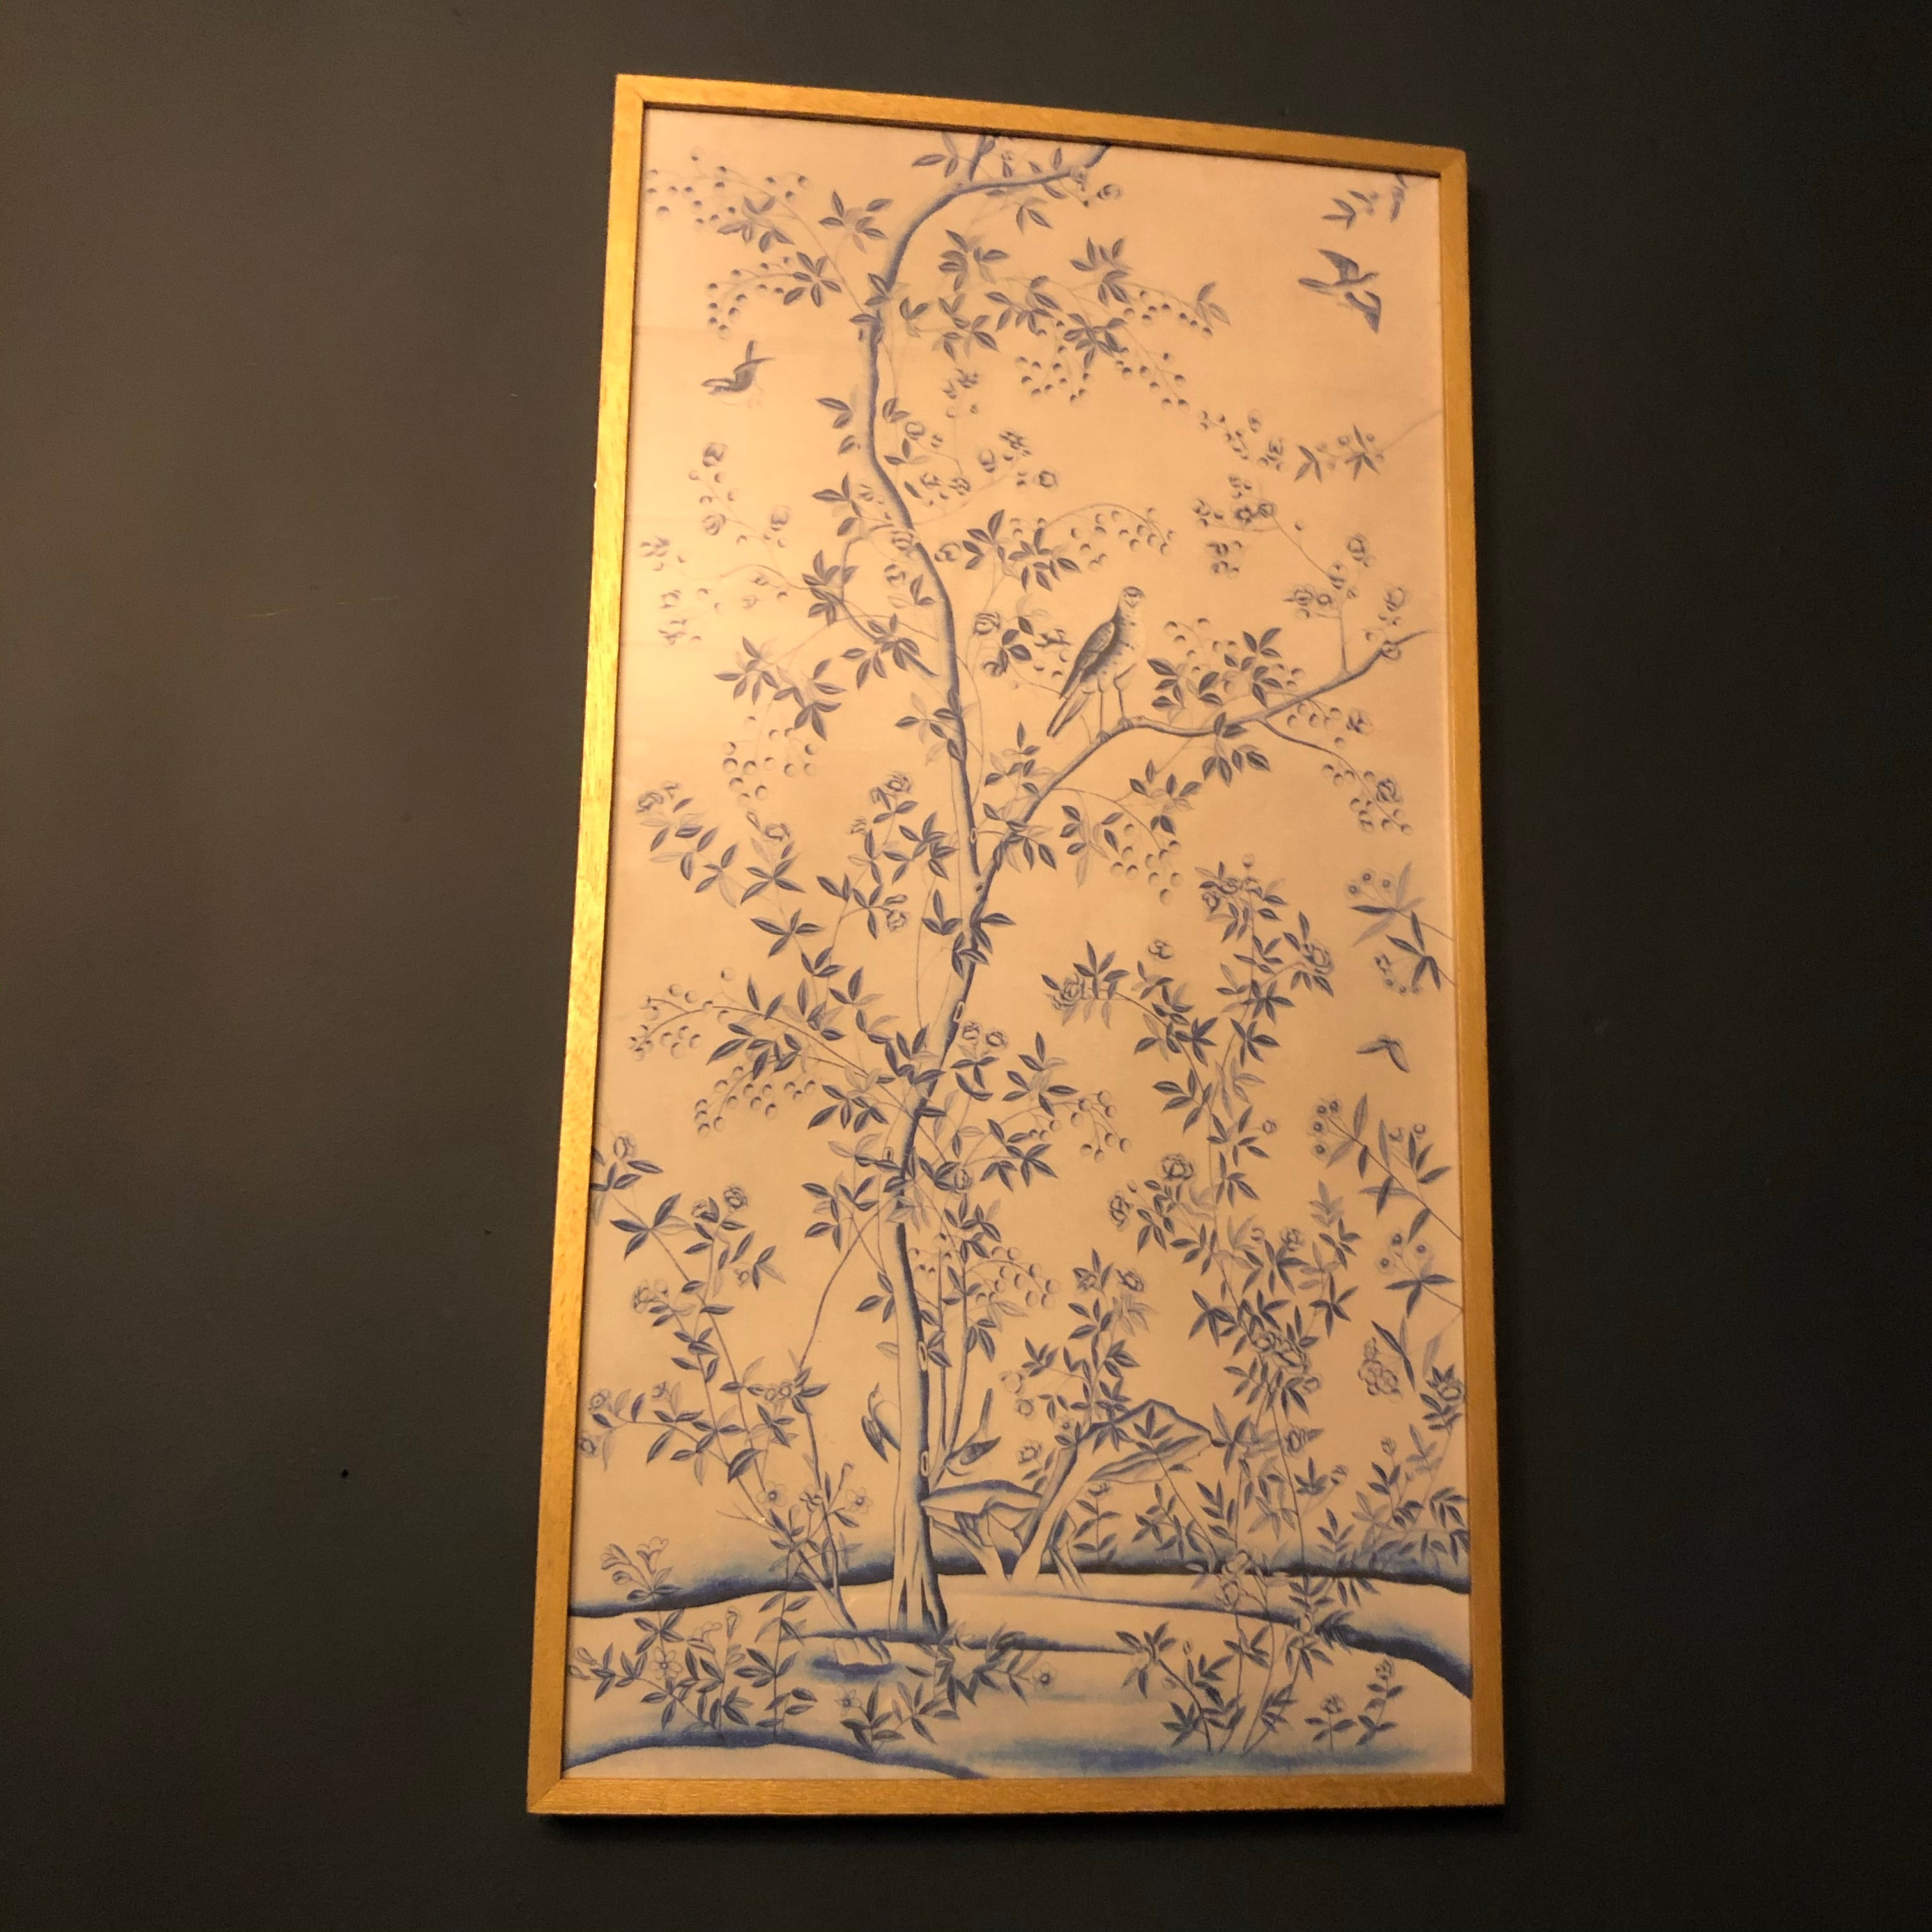 Blue blossom painting (1 of 2)